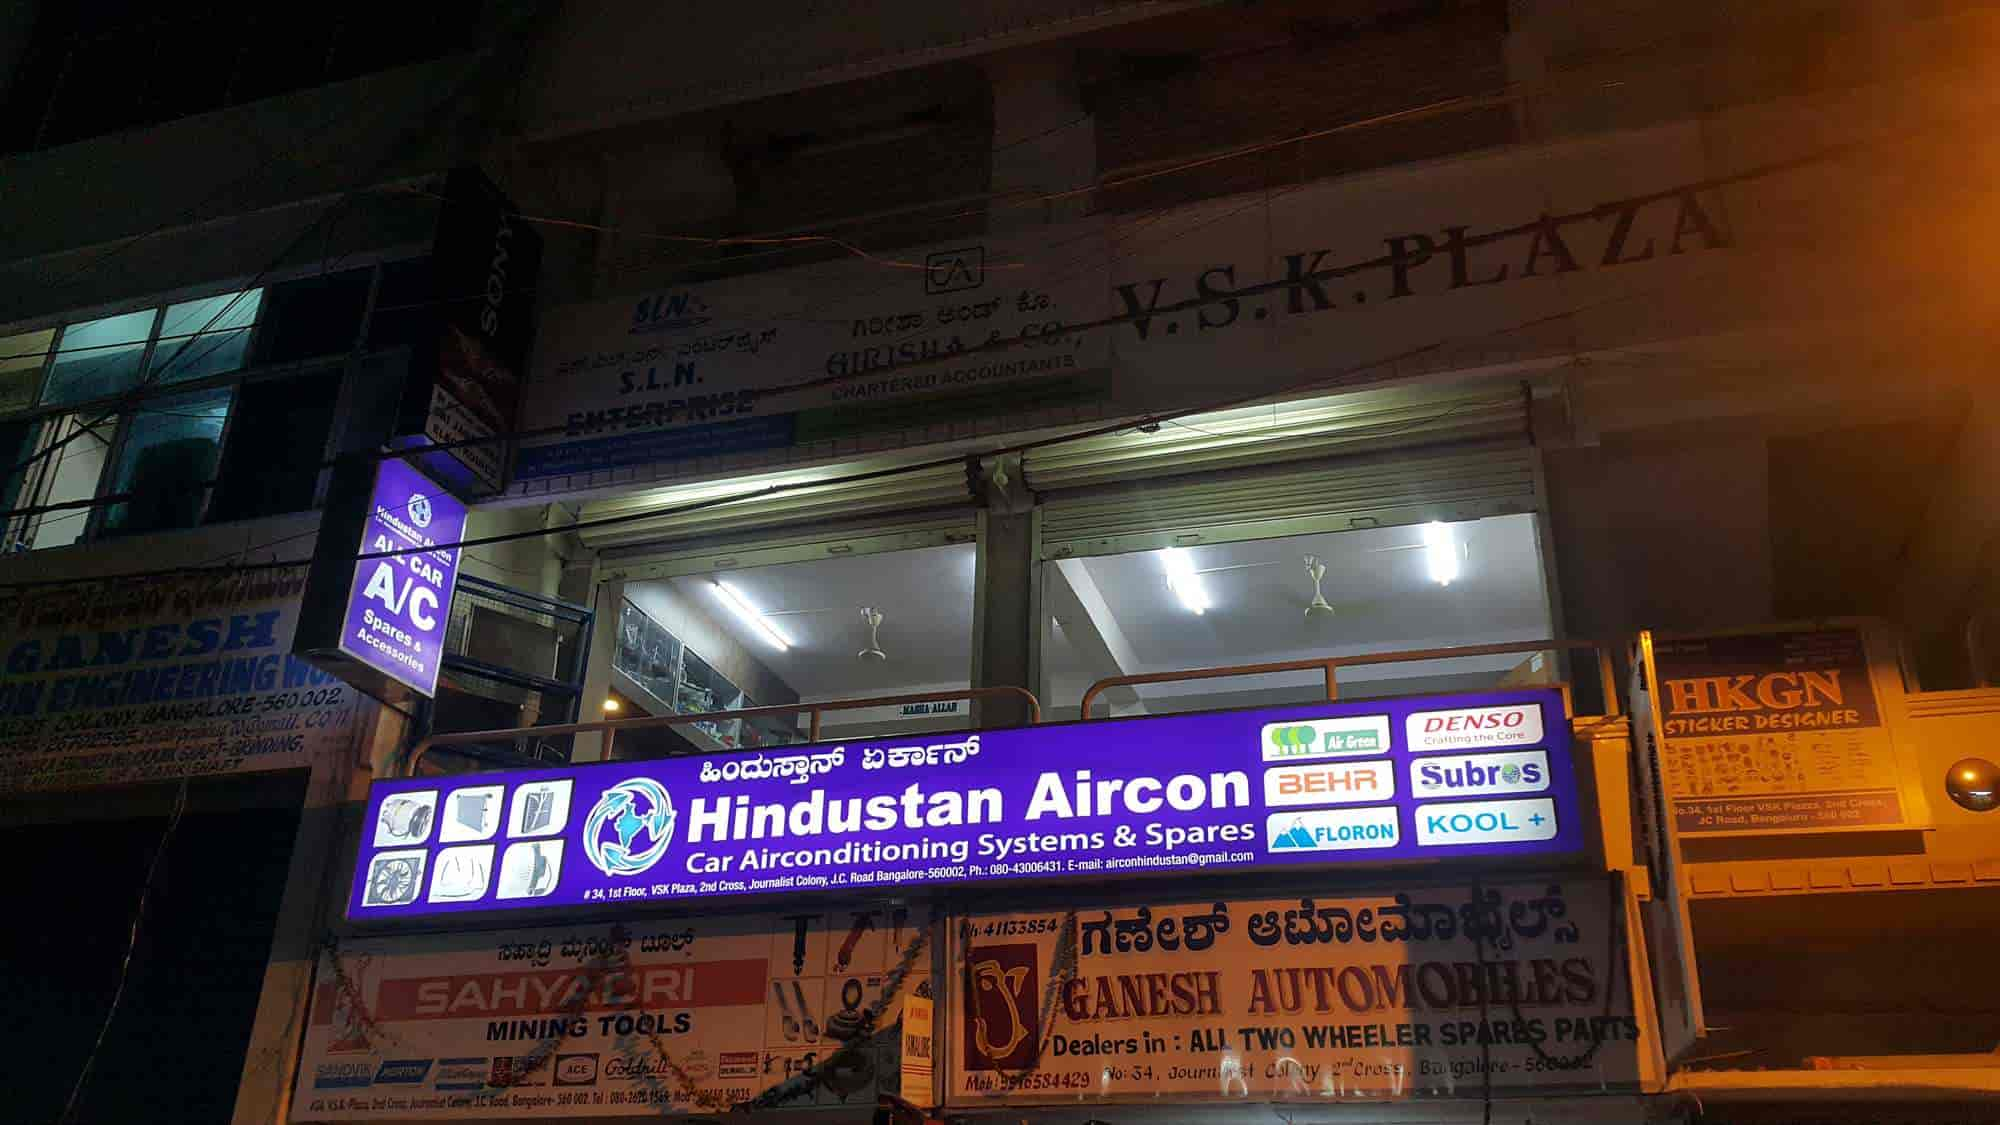 Travel Air Jc Road Bangalore Hindustan Aircon Jc Road Car Accessory Dealers In